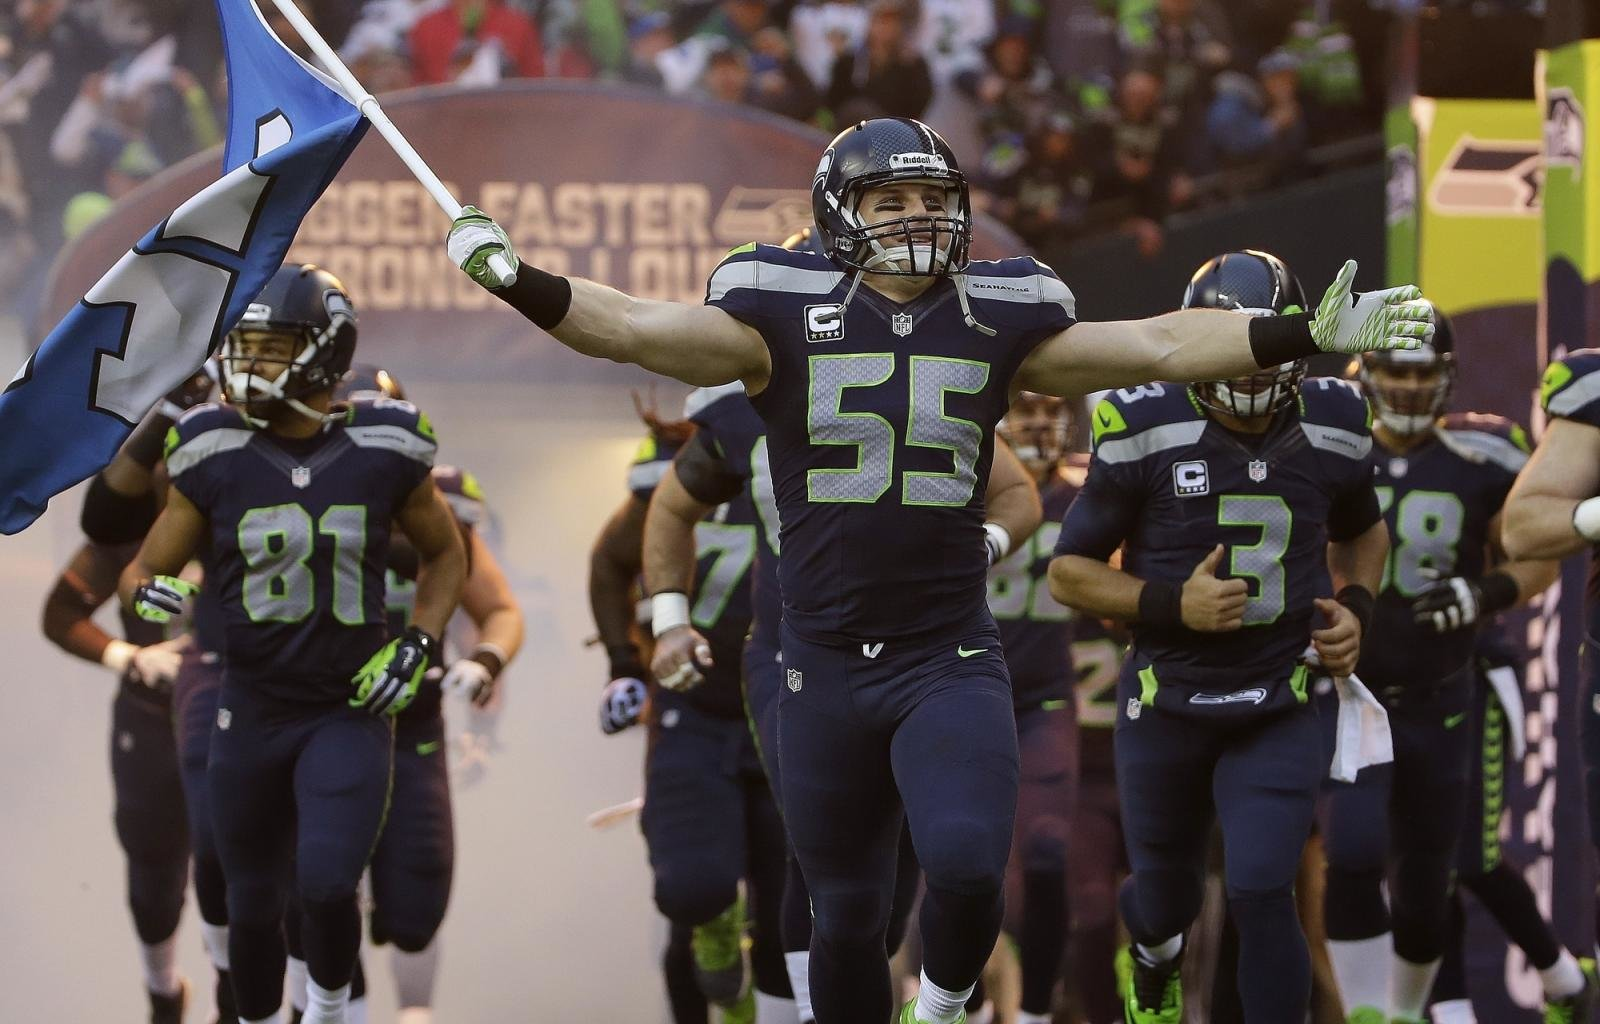 Awesome Seattle Seahawks free wallpaper ID:348006 for hd 1600x1024 computer